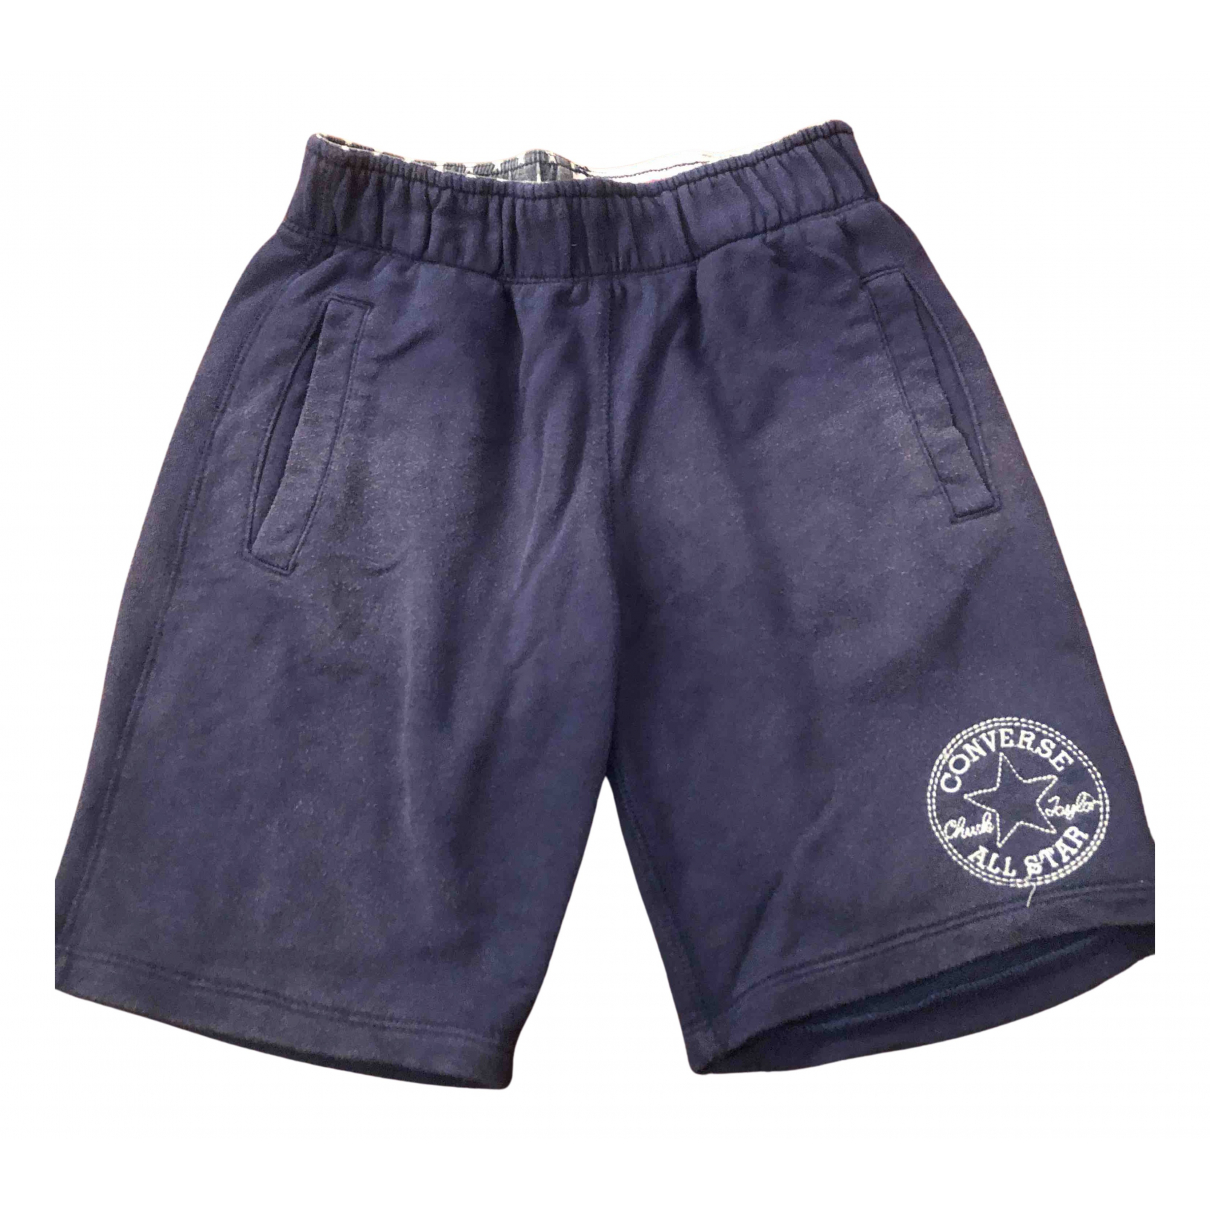 Converse N Blue Cotton Shorts for Kids 10 years - up to 142cm FR